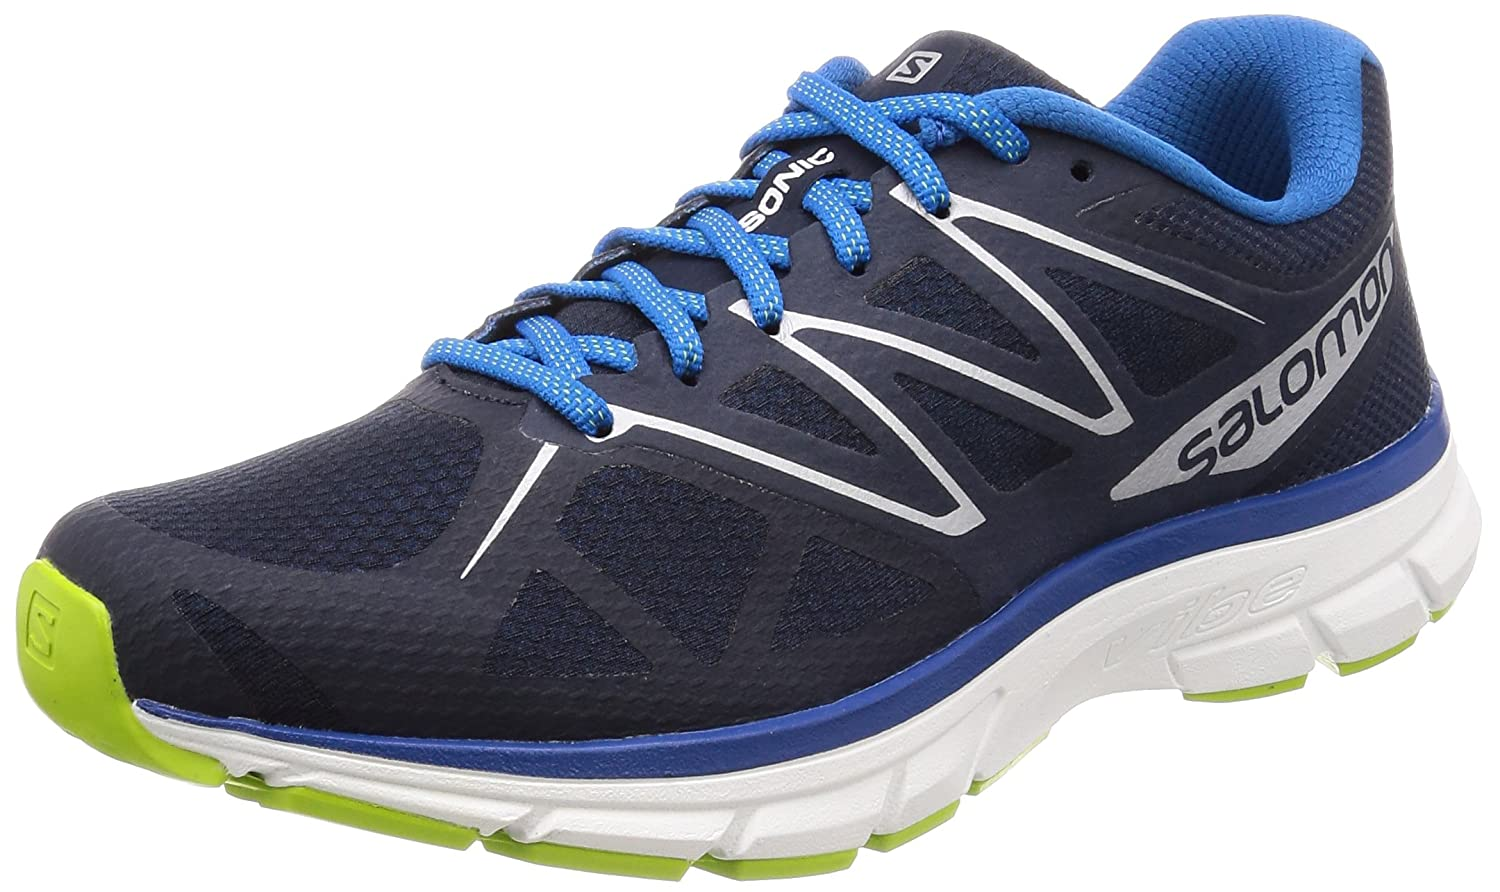 Salomon Sonic, Zapatillas de Trail Running para Hombre 42 EU|Azul (Navy Blazer/White/Imperial Blue)